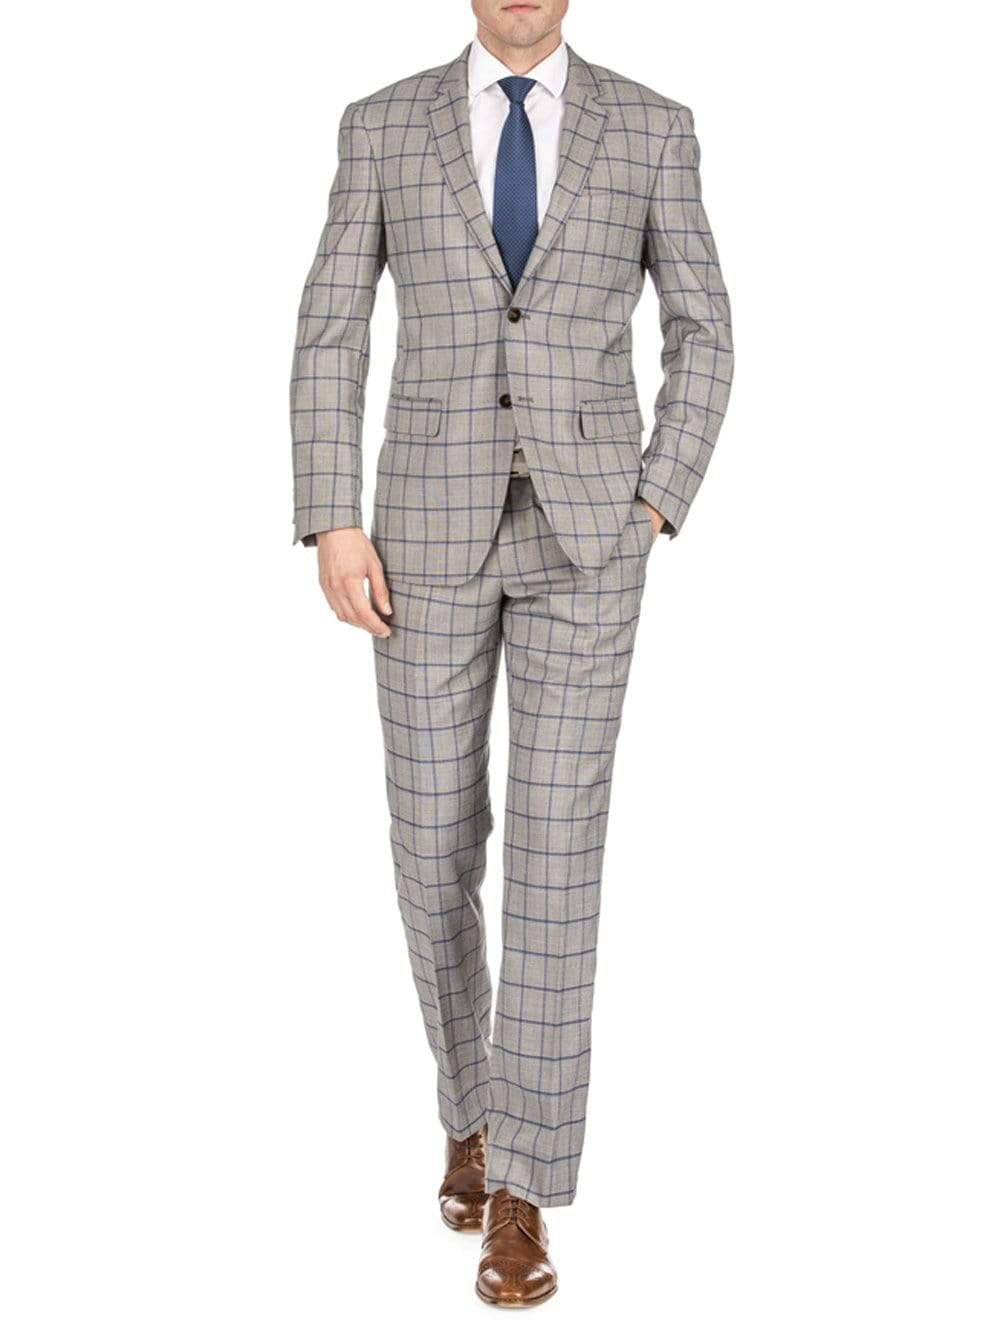 DAILY HAUTE Men's Suits TAN / 36Rx30W Gino Vitale Men's Window Pane Slim Fit Suits